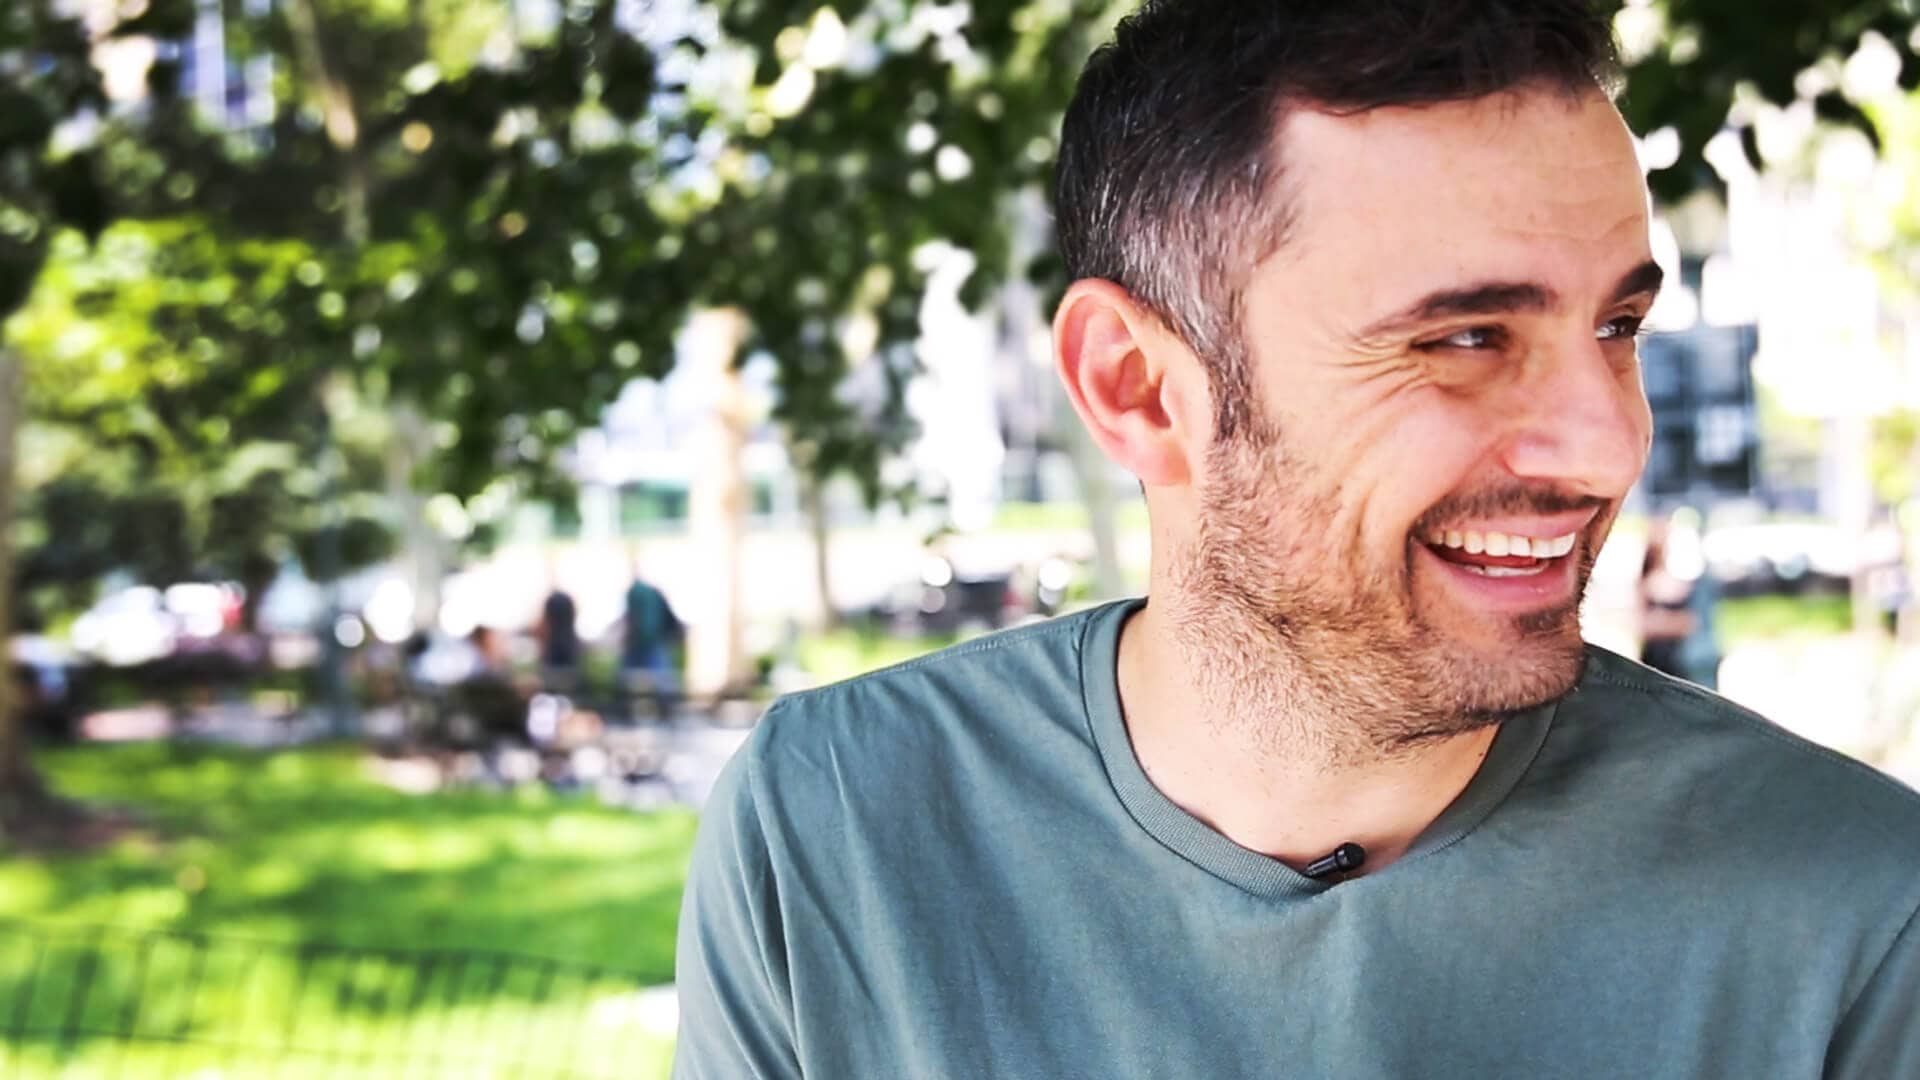 Gary Vaynerchuk filming the #AskGaryVee Show outside in New York City